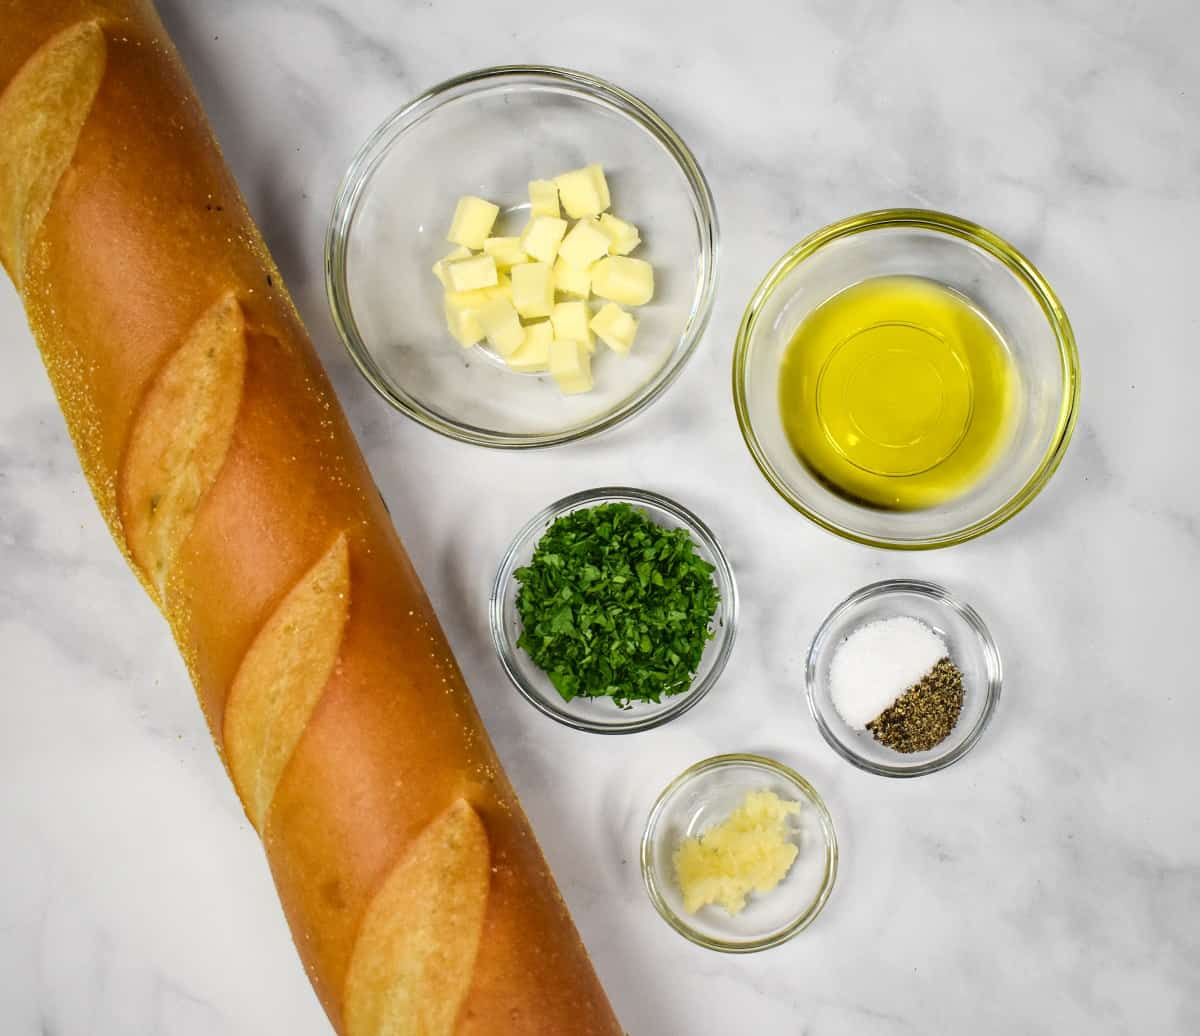 The ingredients for the garlic bread prepped and arranged in glass bowls on a white table with a whole loaf of bread on the left side.